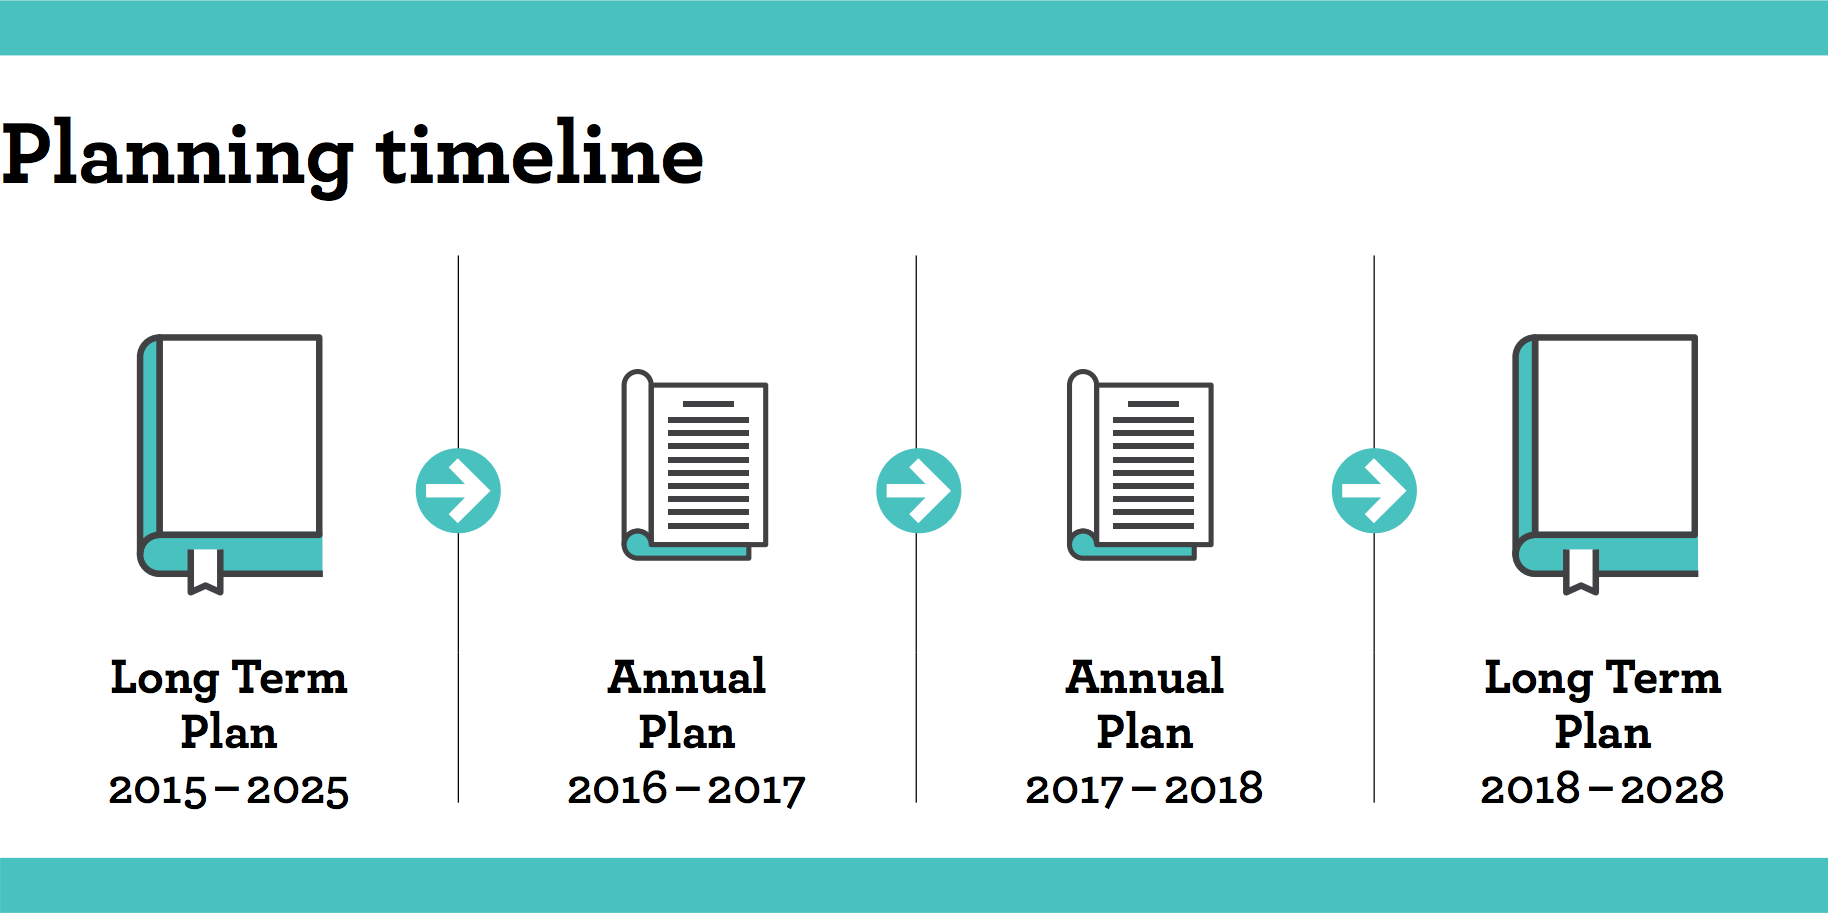 Timeline of Council Planning